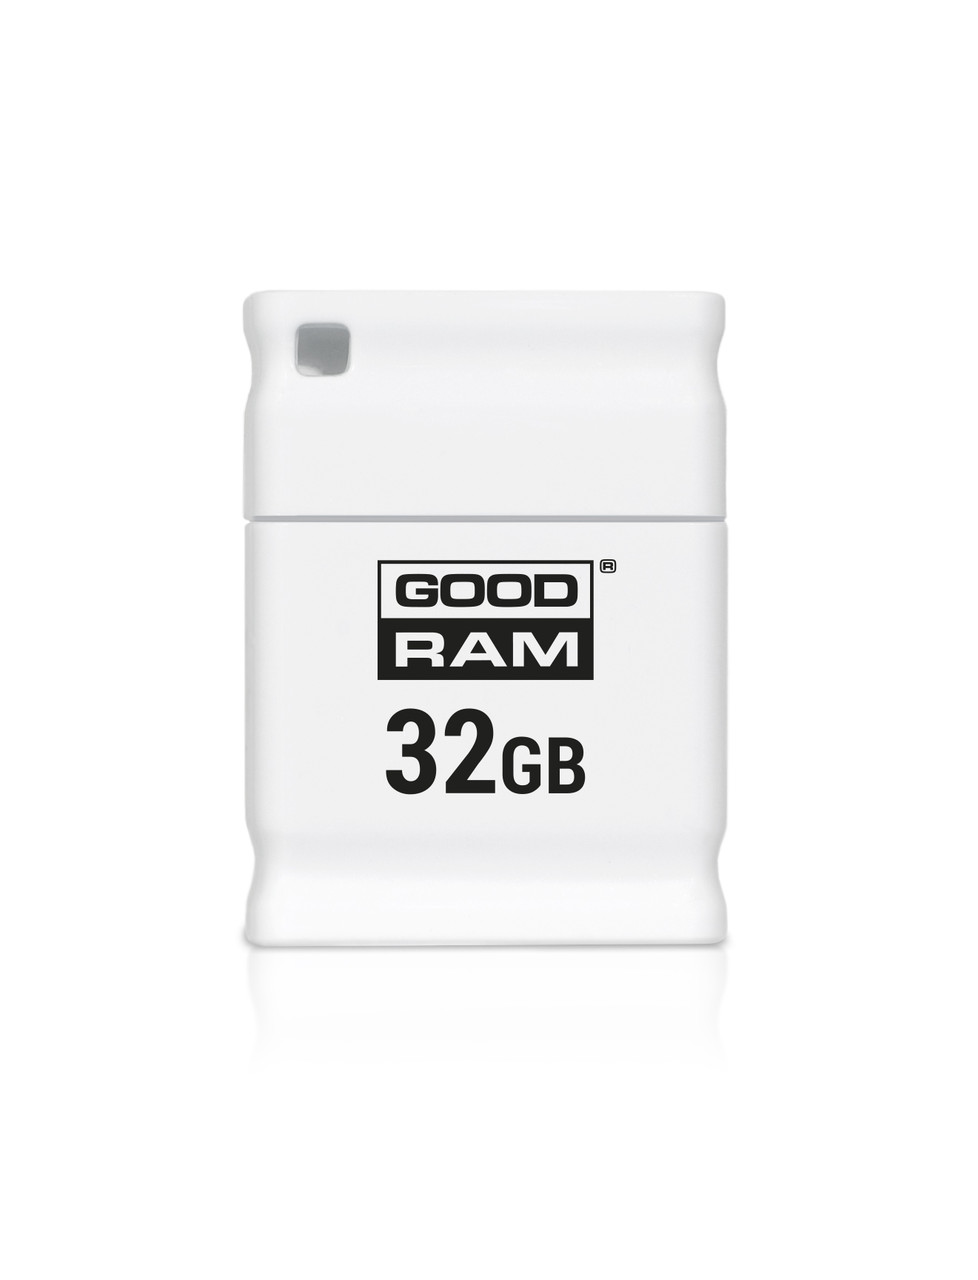 Флеш-накопитель USB 32GB GOODRAM UPI2 (Piccolo) White (UPI2-0320W0R11)